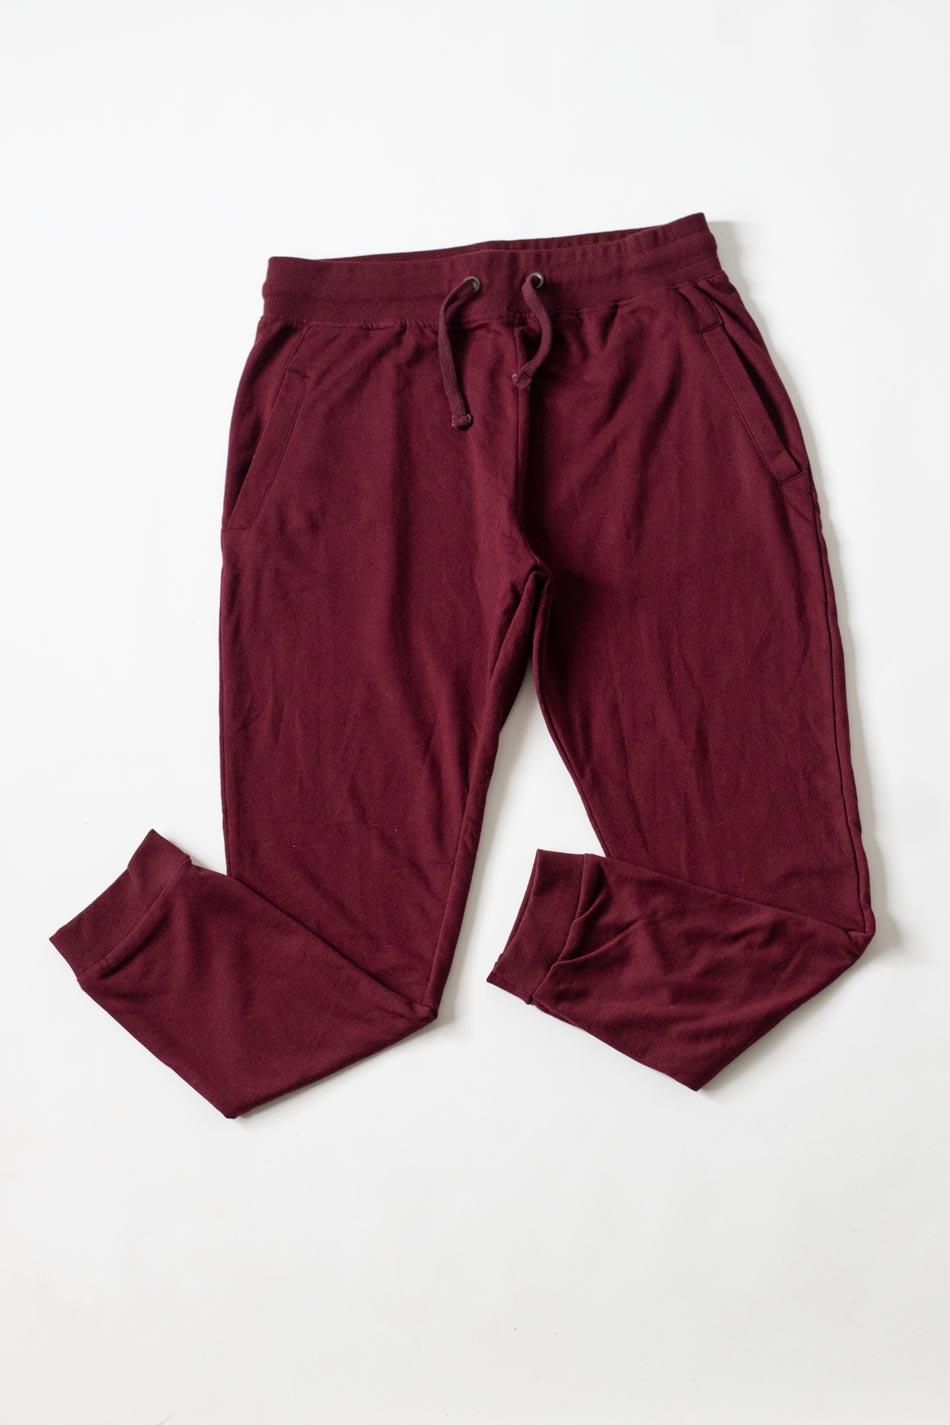 cotton maroon trackpant jogger for men